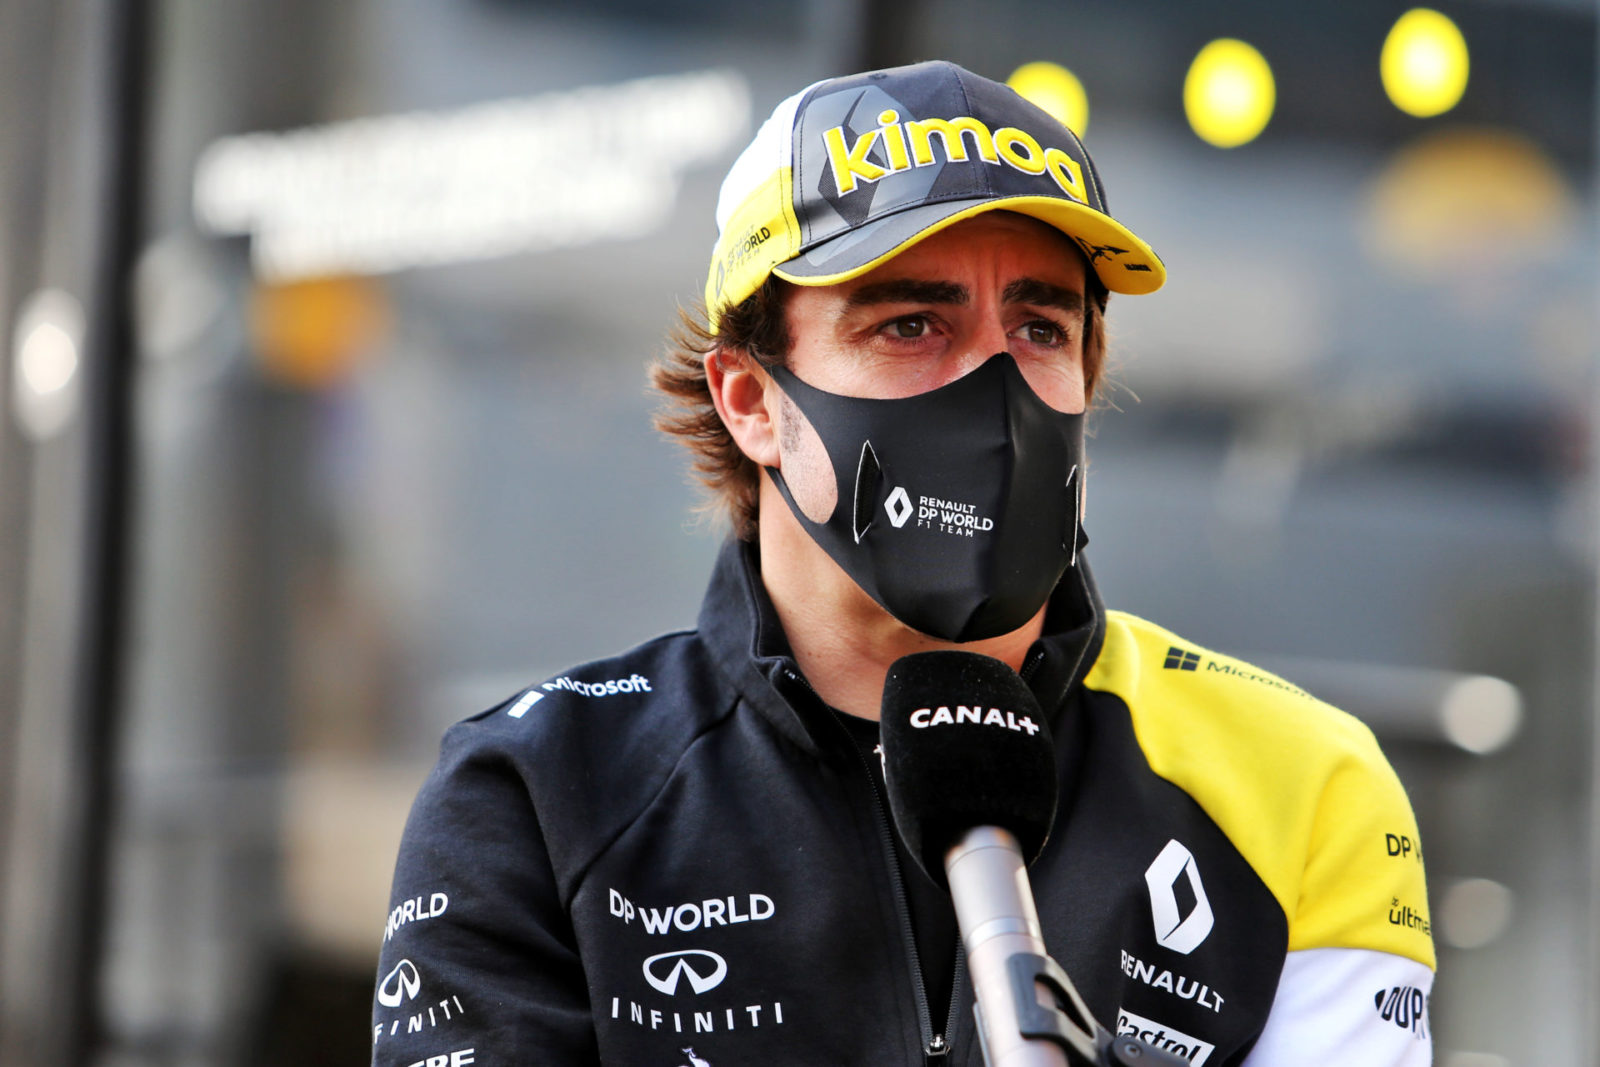 Fernando Alonso Would Be Making A Return With Alpine